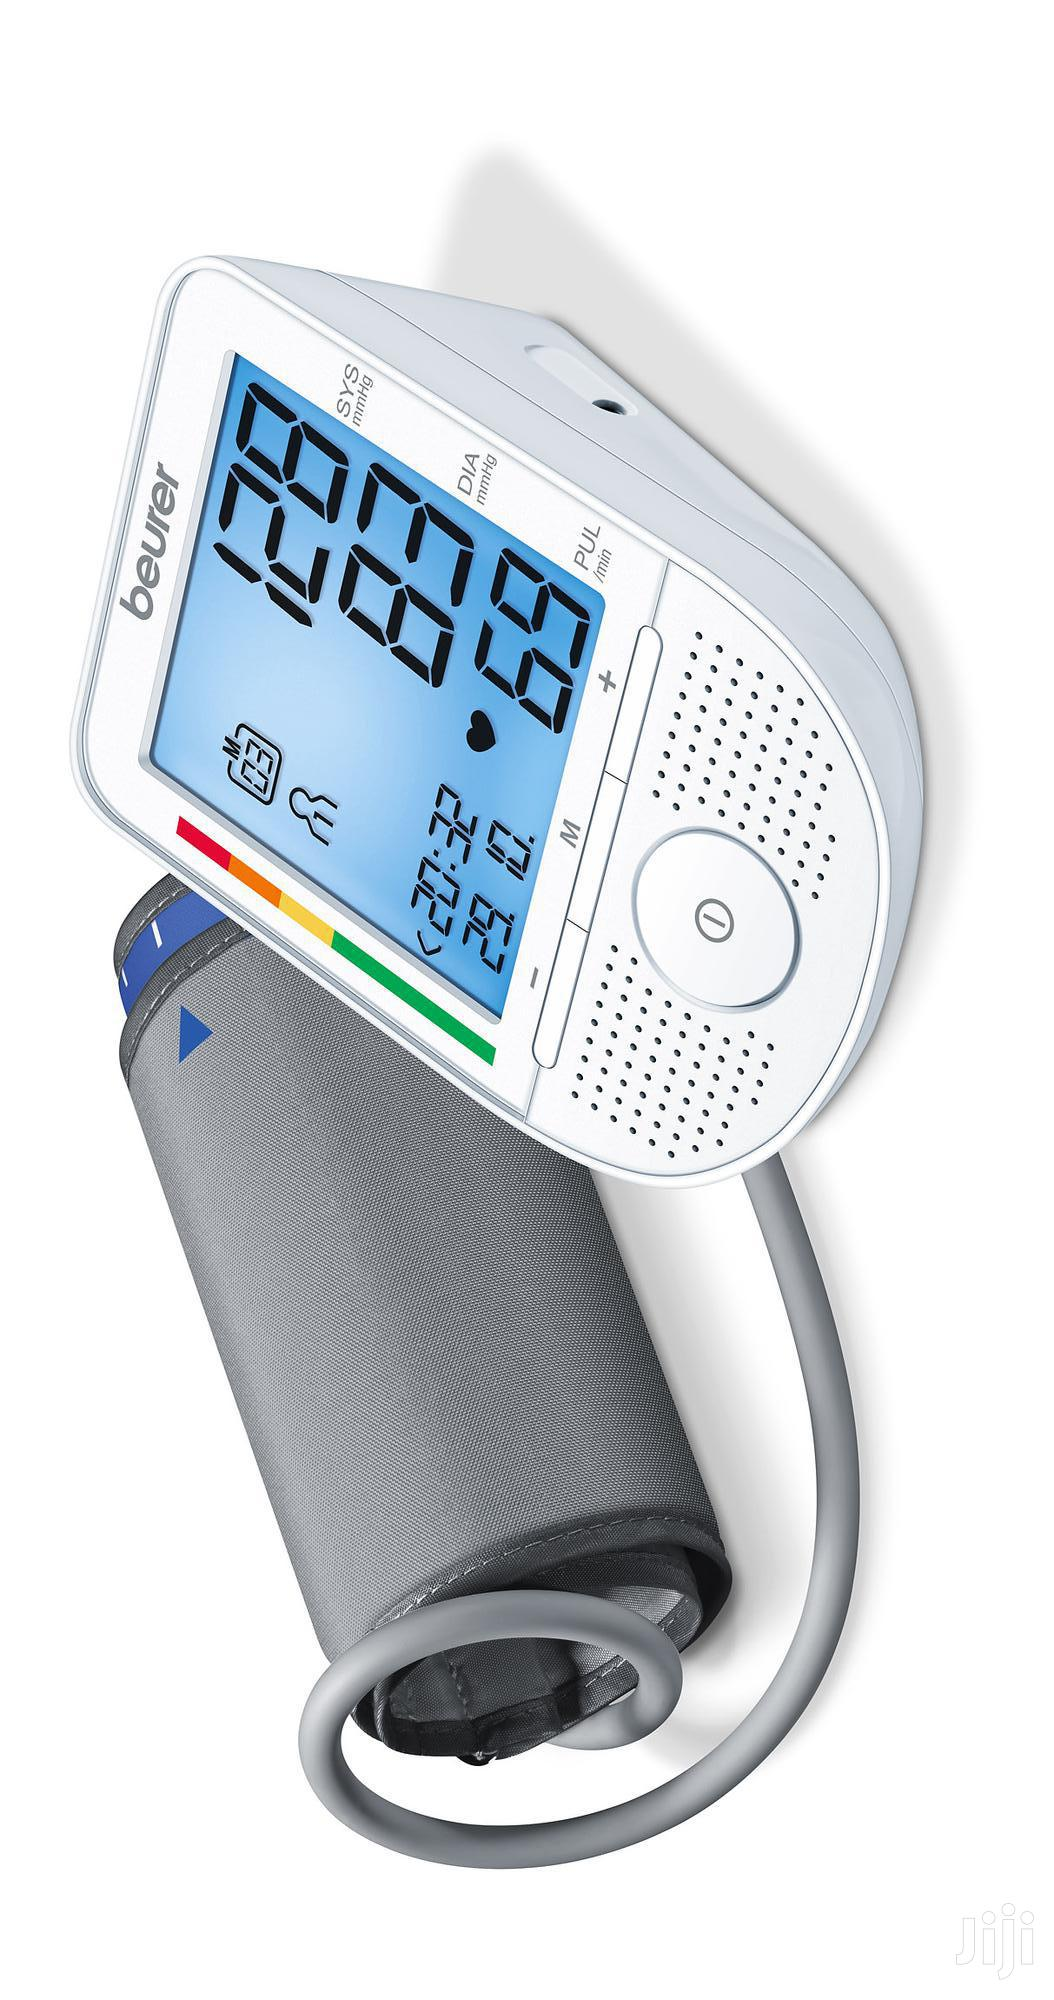 Bm 49 Blood Pressure Monitor